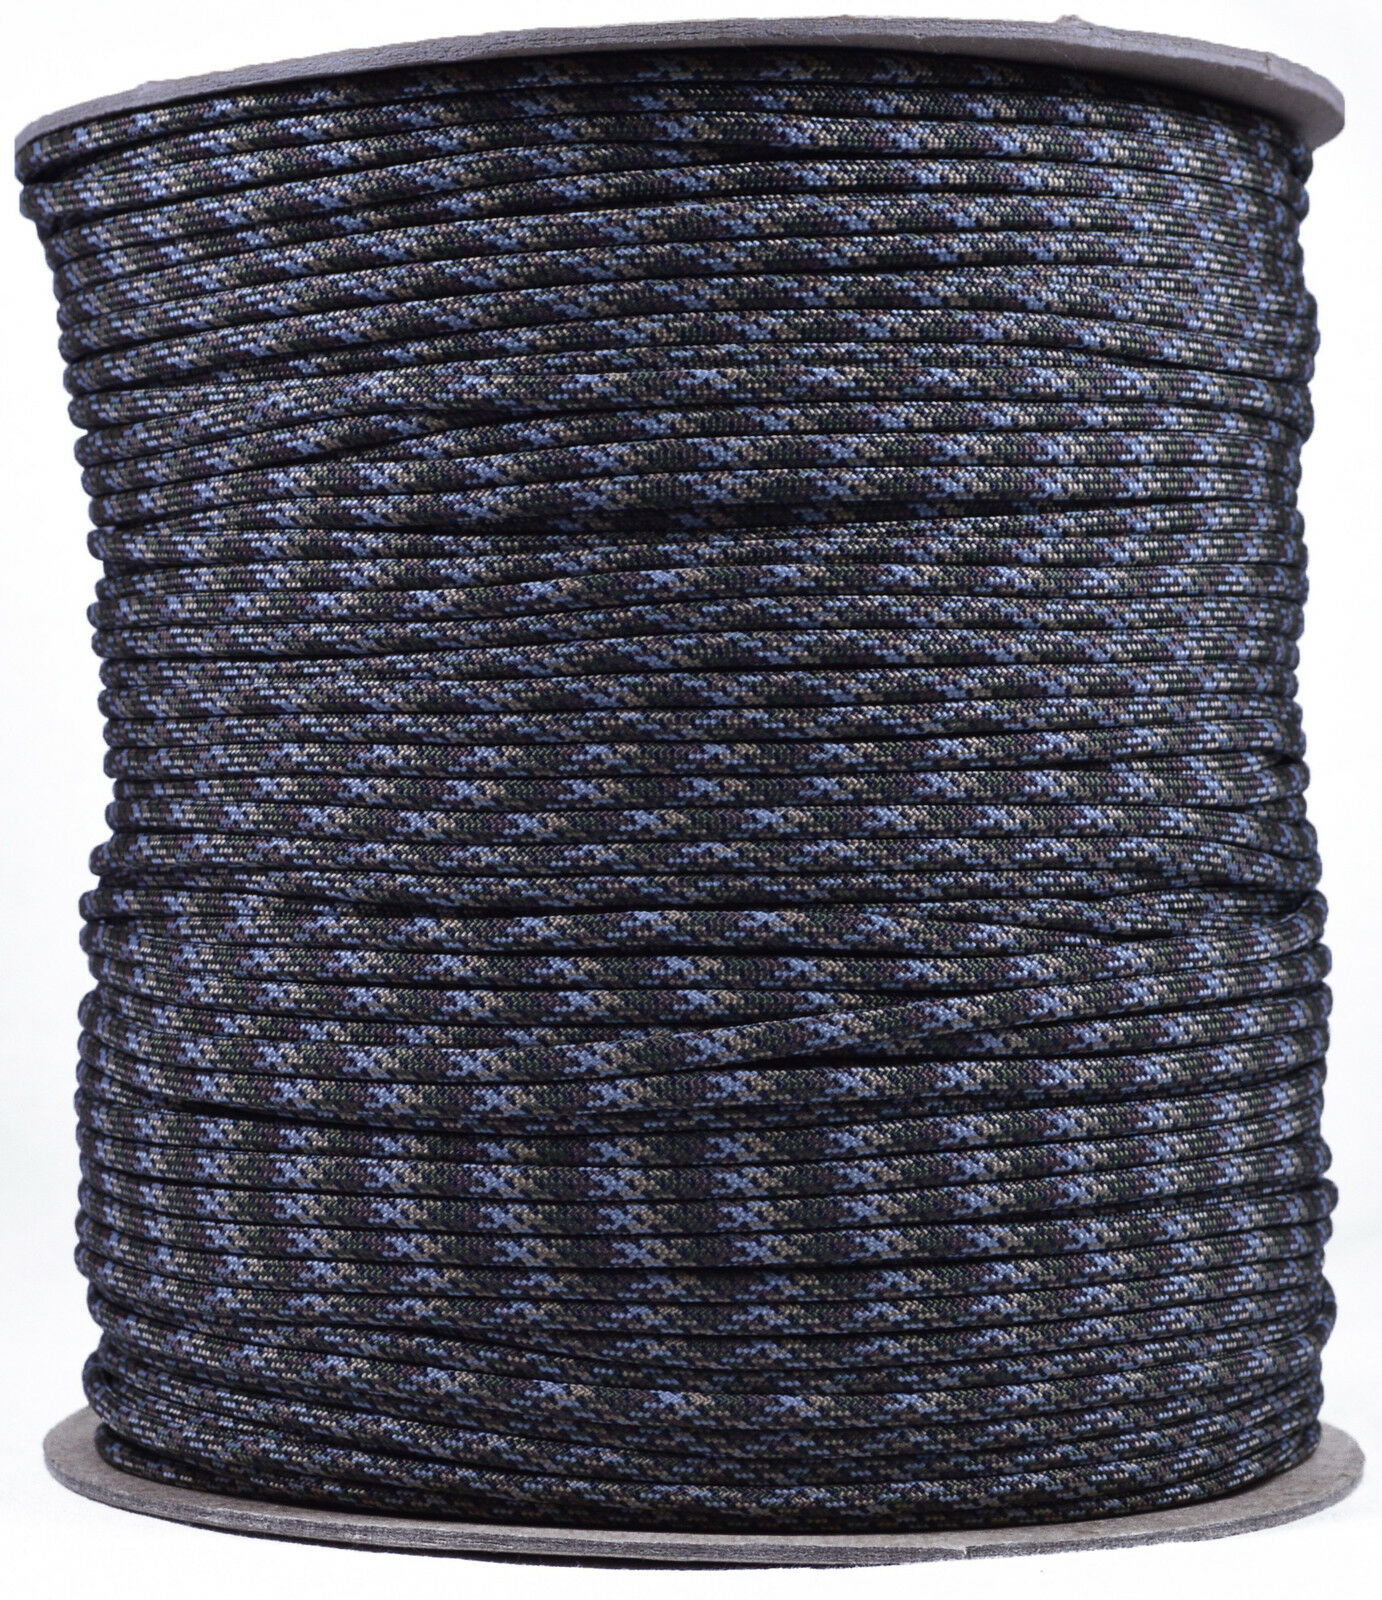 Infiltrate  550 Paracord Rope 7 strand Parachute Cord  1000 Foot Spool